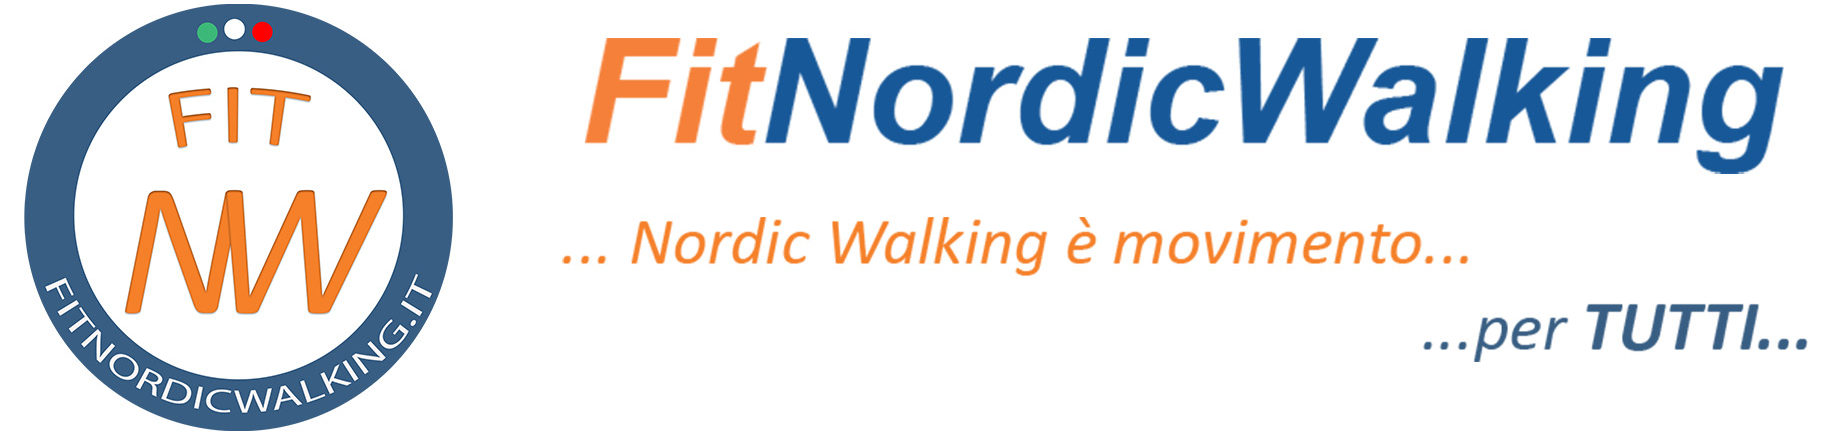 Fitnordicwalking